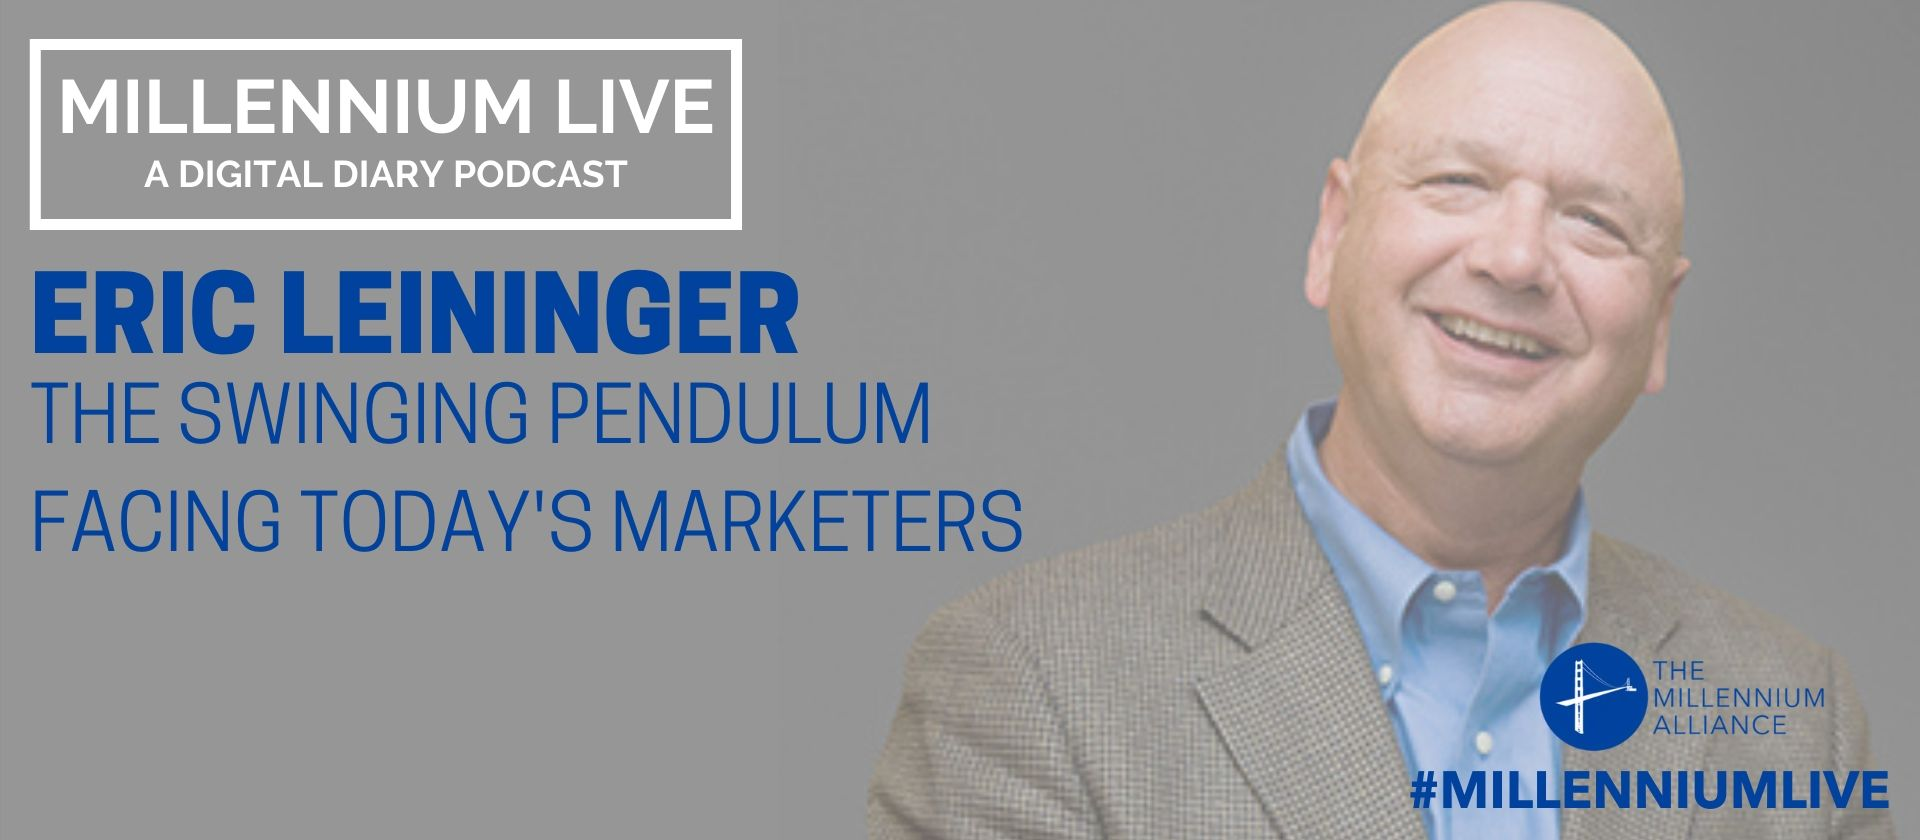 Eric Leininger Marketing Podcast Millennium Alliance